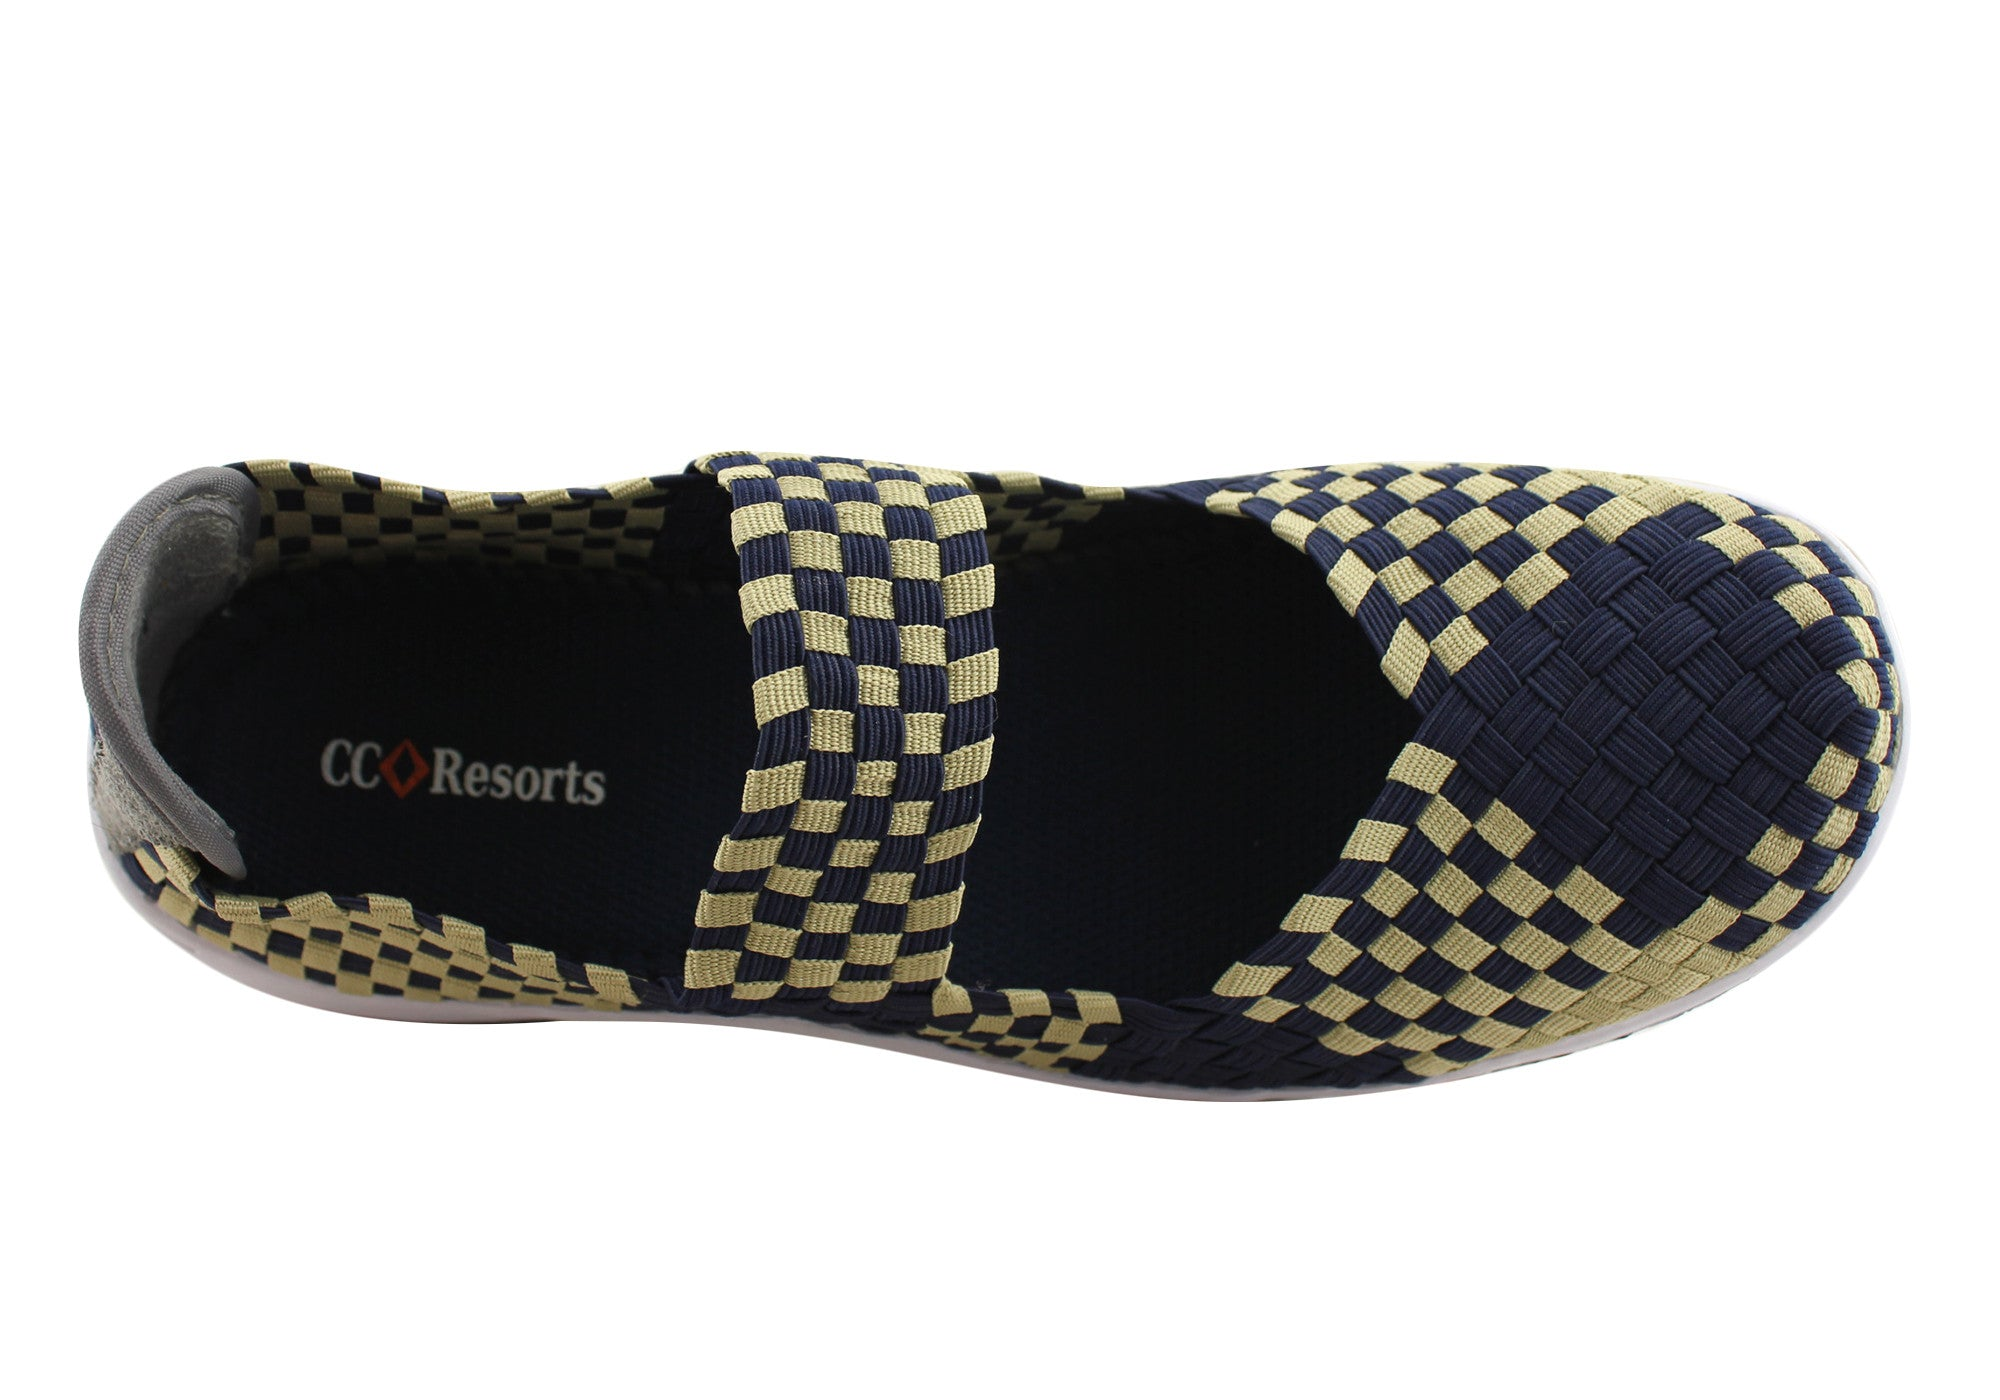 CC Resorts Sammi Womens Comfortable Casual Shoes